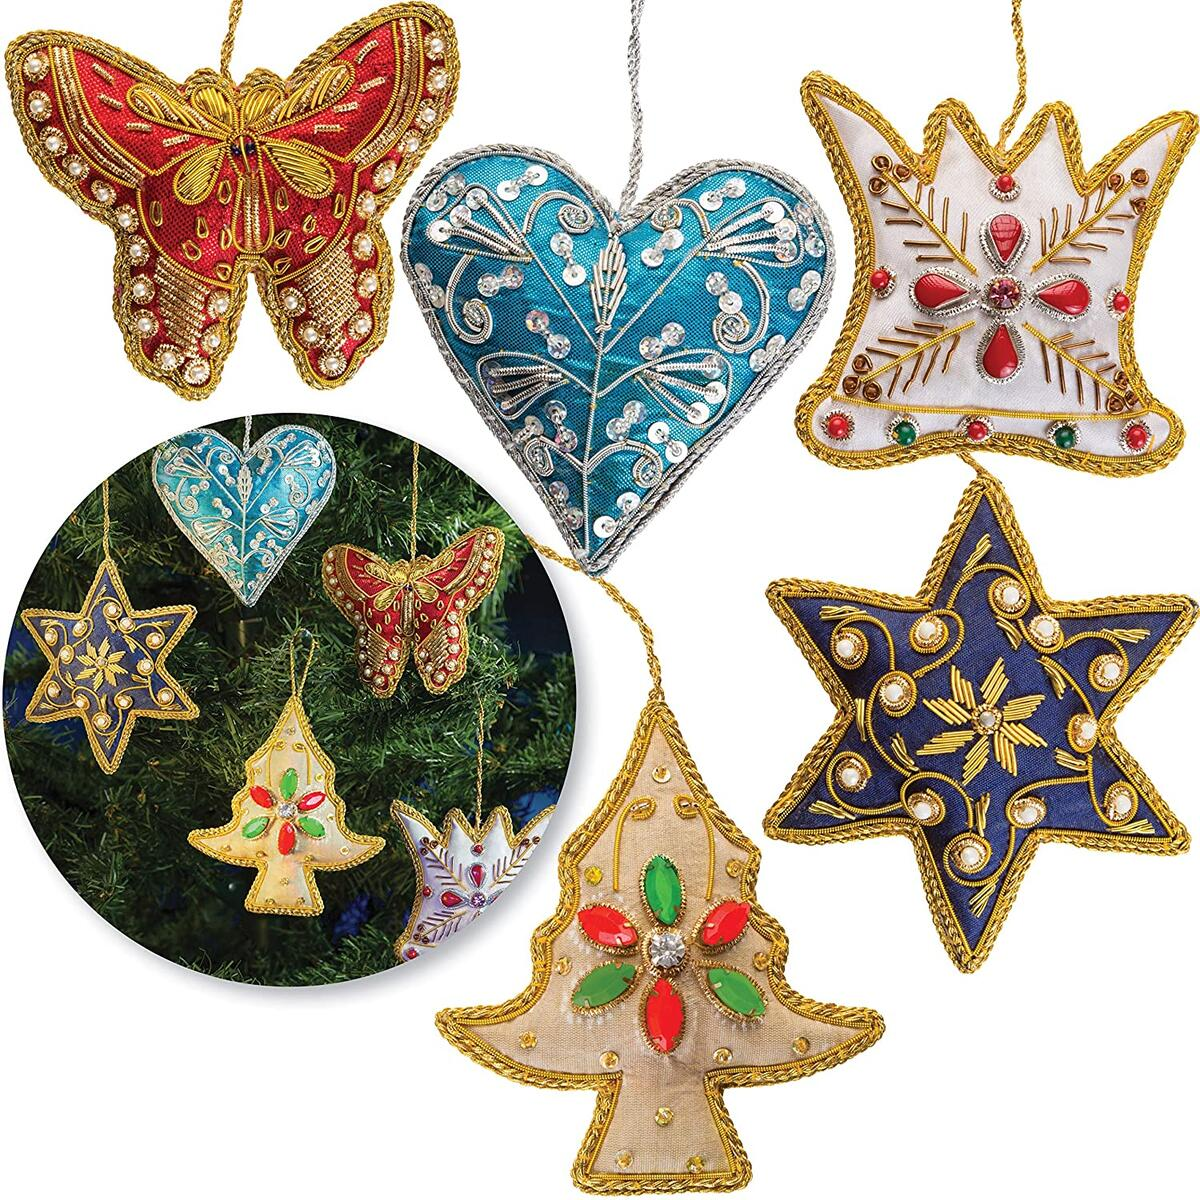 Christmas Tree Ornaments Handmade Decorations Set of 5 Beaded Embroidered Pearl Hanging Fabric Cloth Elegant Hand Stitched Unique Holiday Present Idea Xmas Stocking Decor Star, Heart, Crown, Butterfly